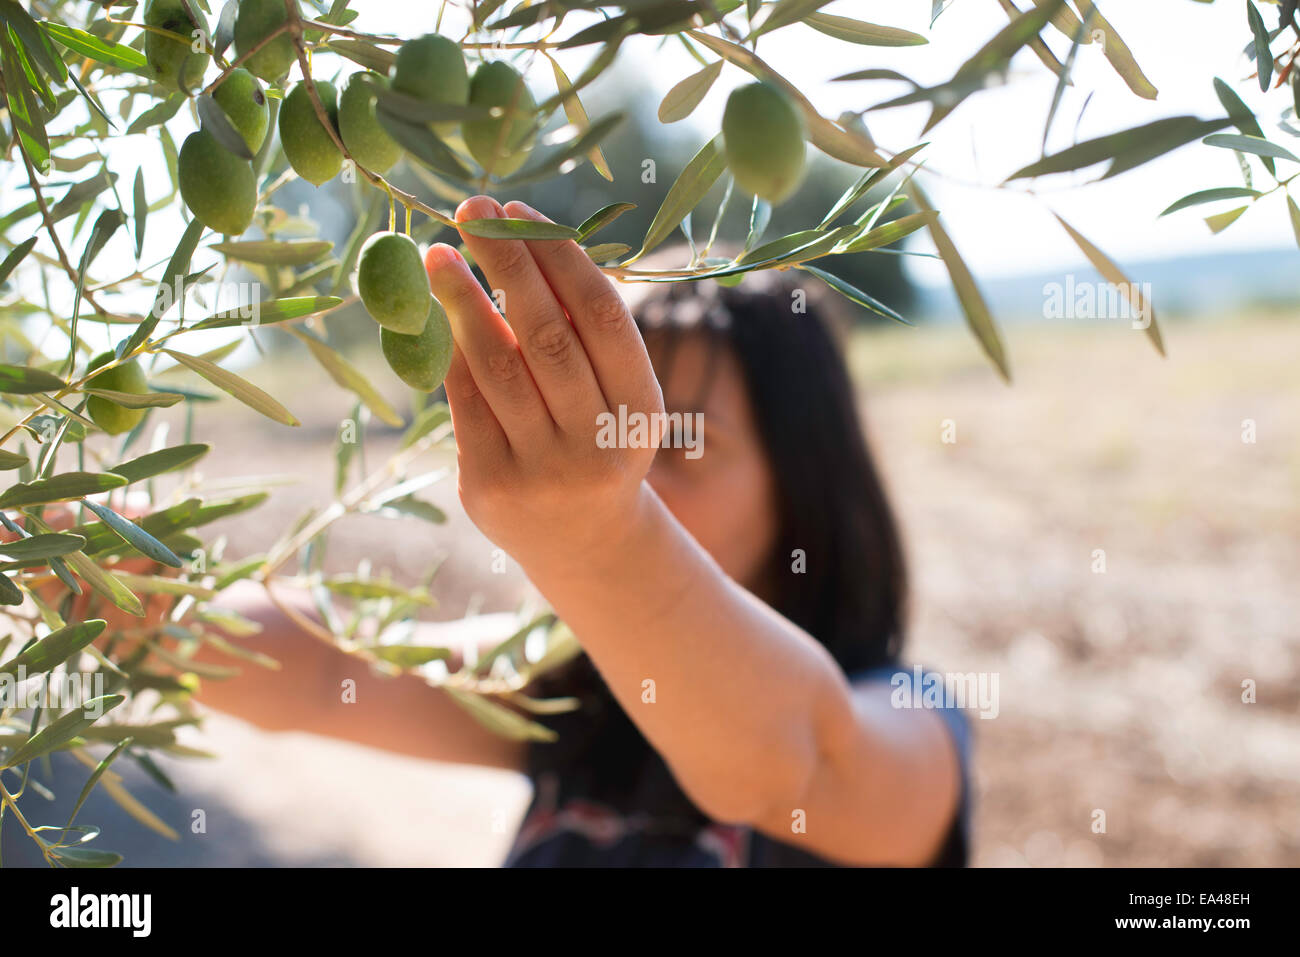 Picking olives.Woman holding olive branch - Stock Image